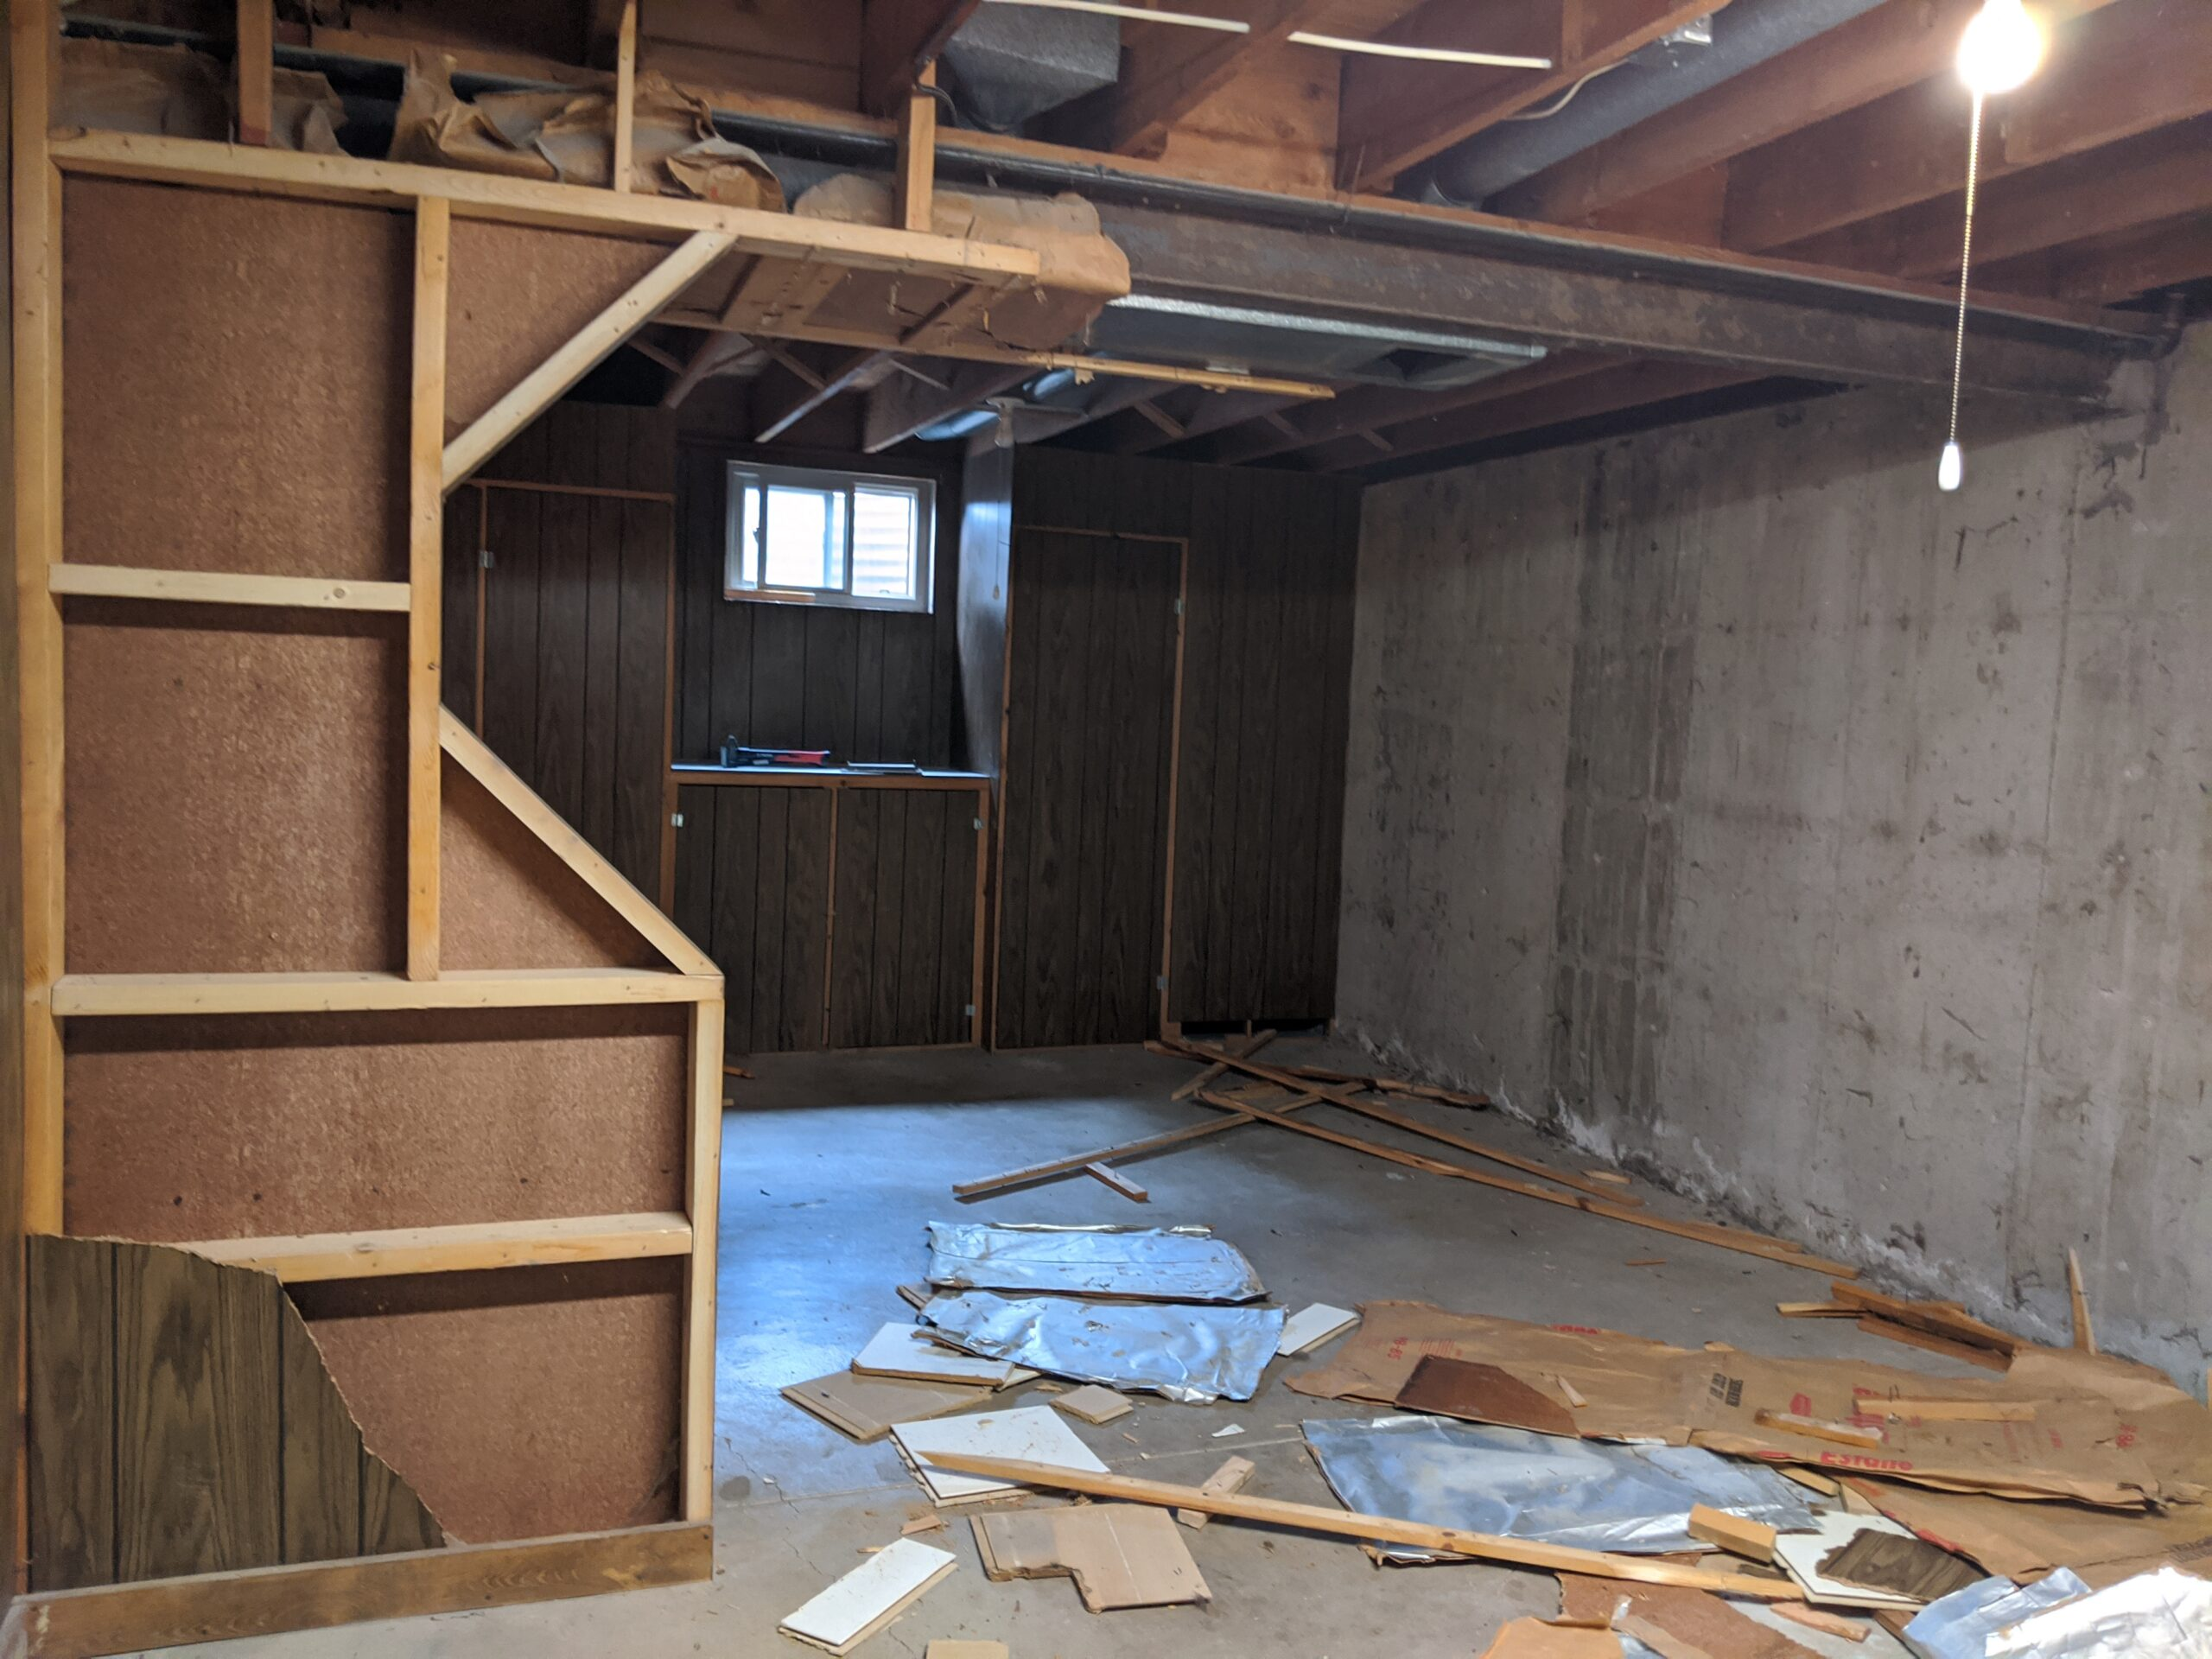 We could hardly wait to take down the ugly paneling! This is the first picture that Mim got, after Josh had already removed 3 sides of the archway and 1 whole wall of paneling.